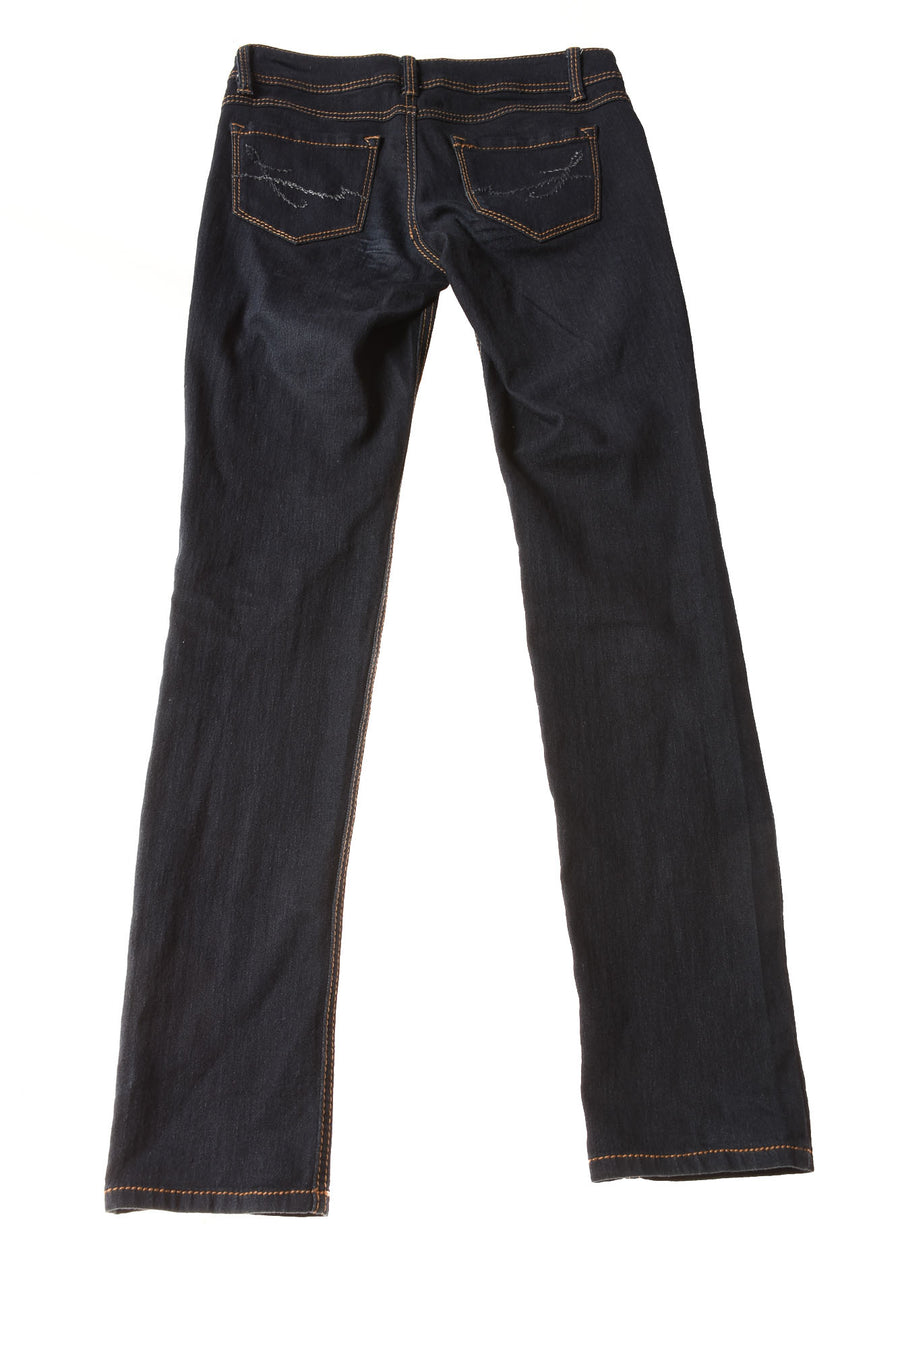 Women's Jeans By Fragile